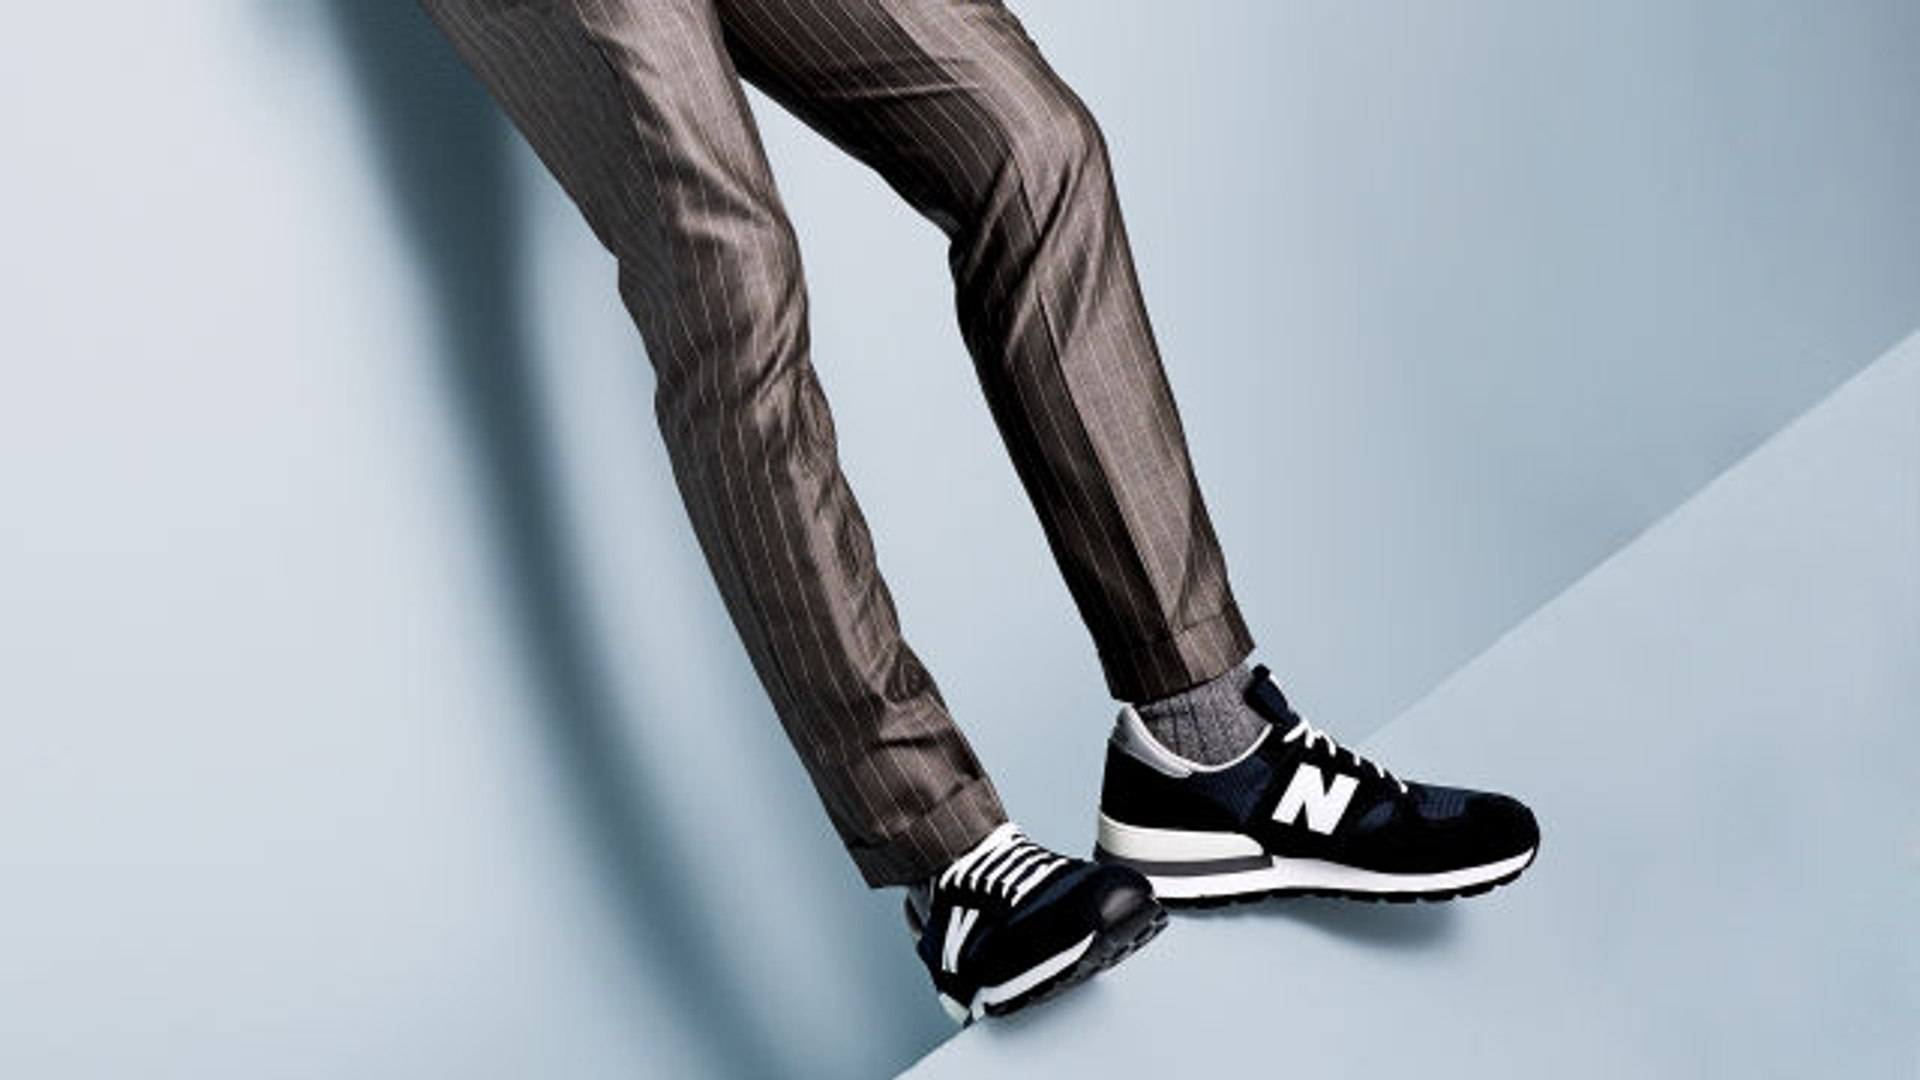 How to Wear Sneakers with a Suit